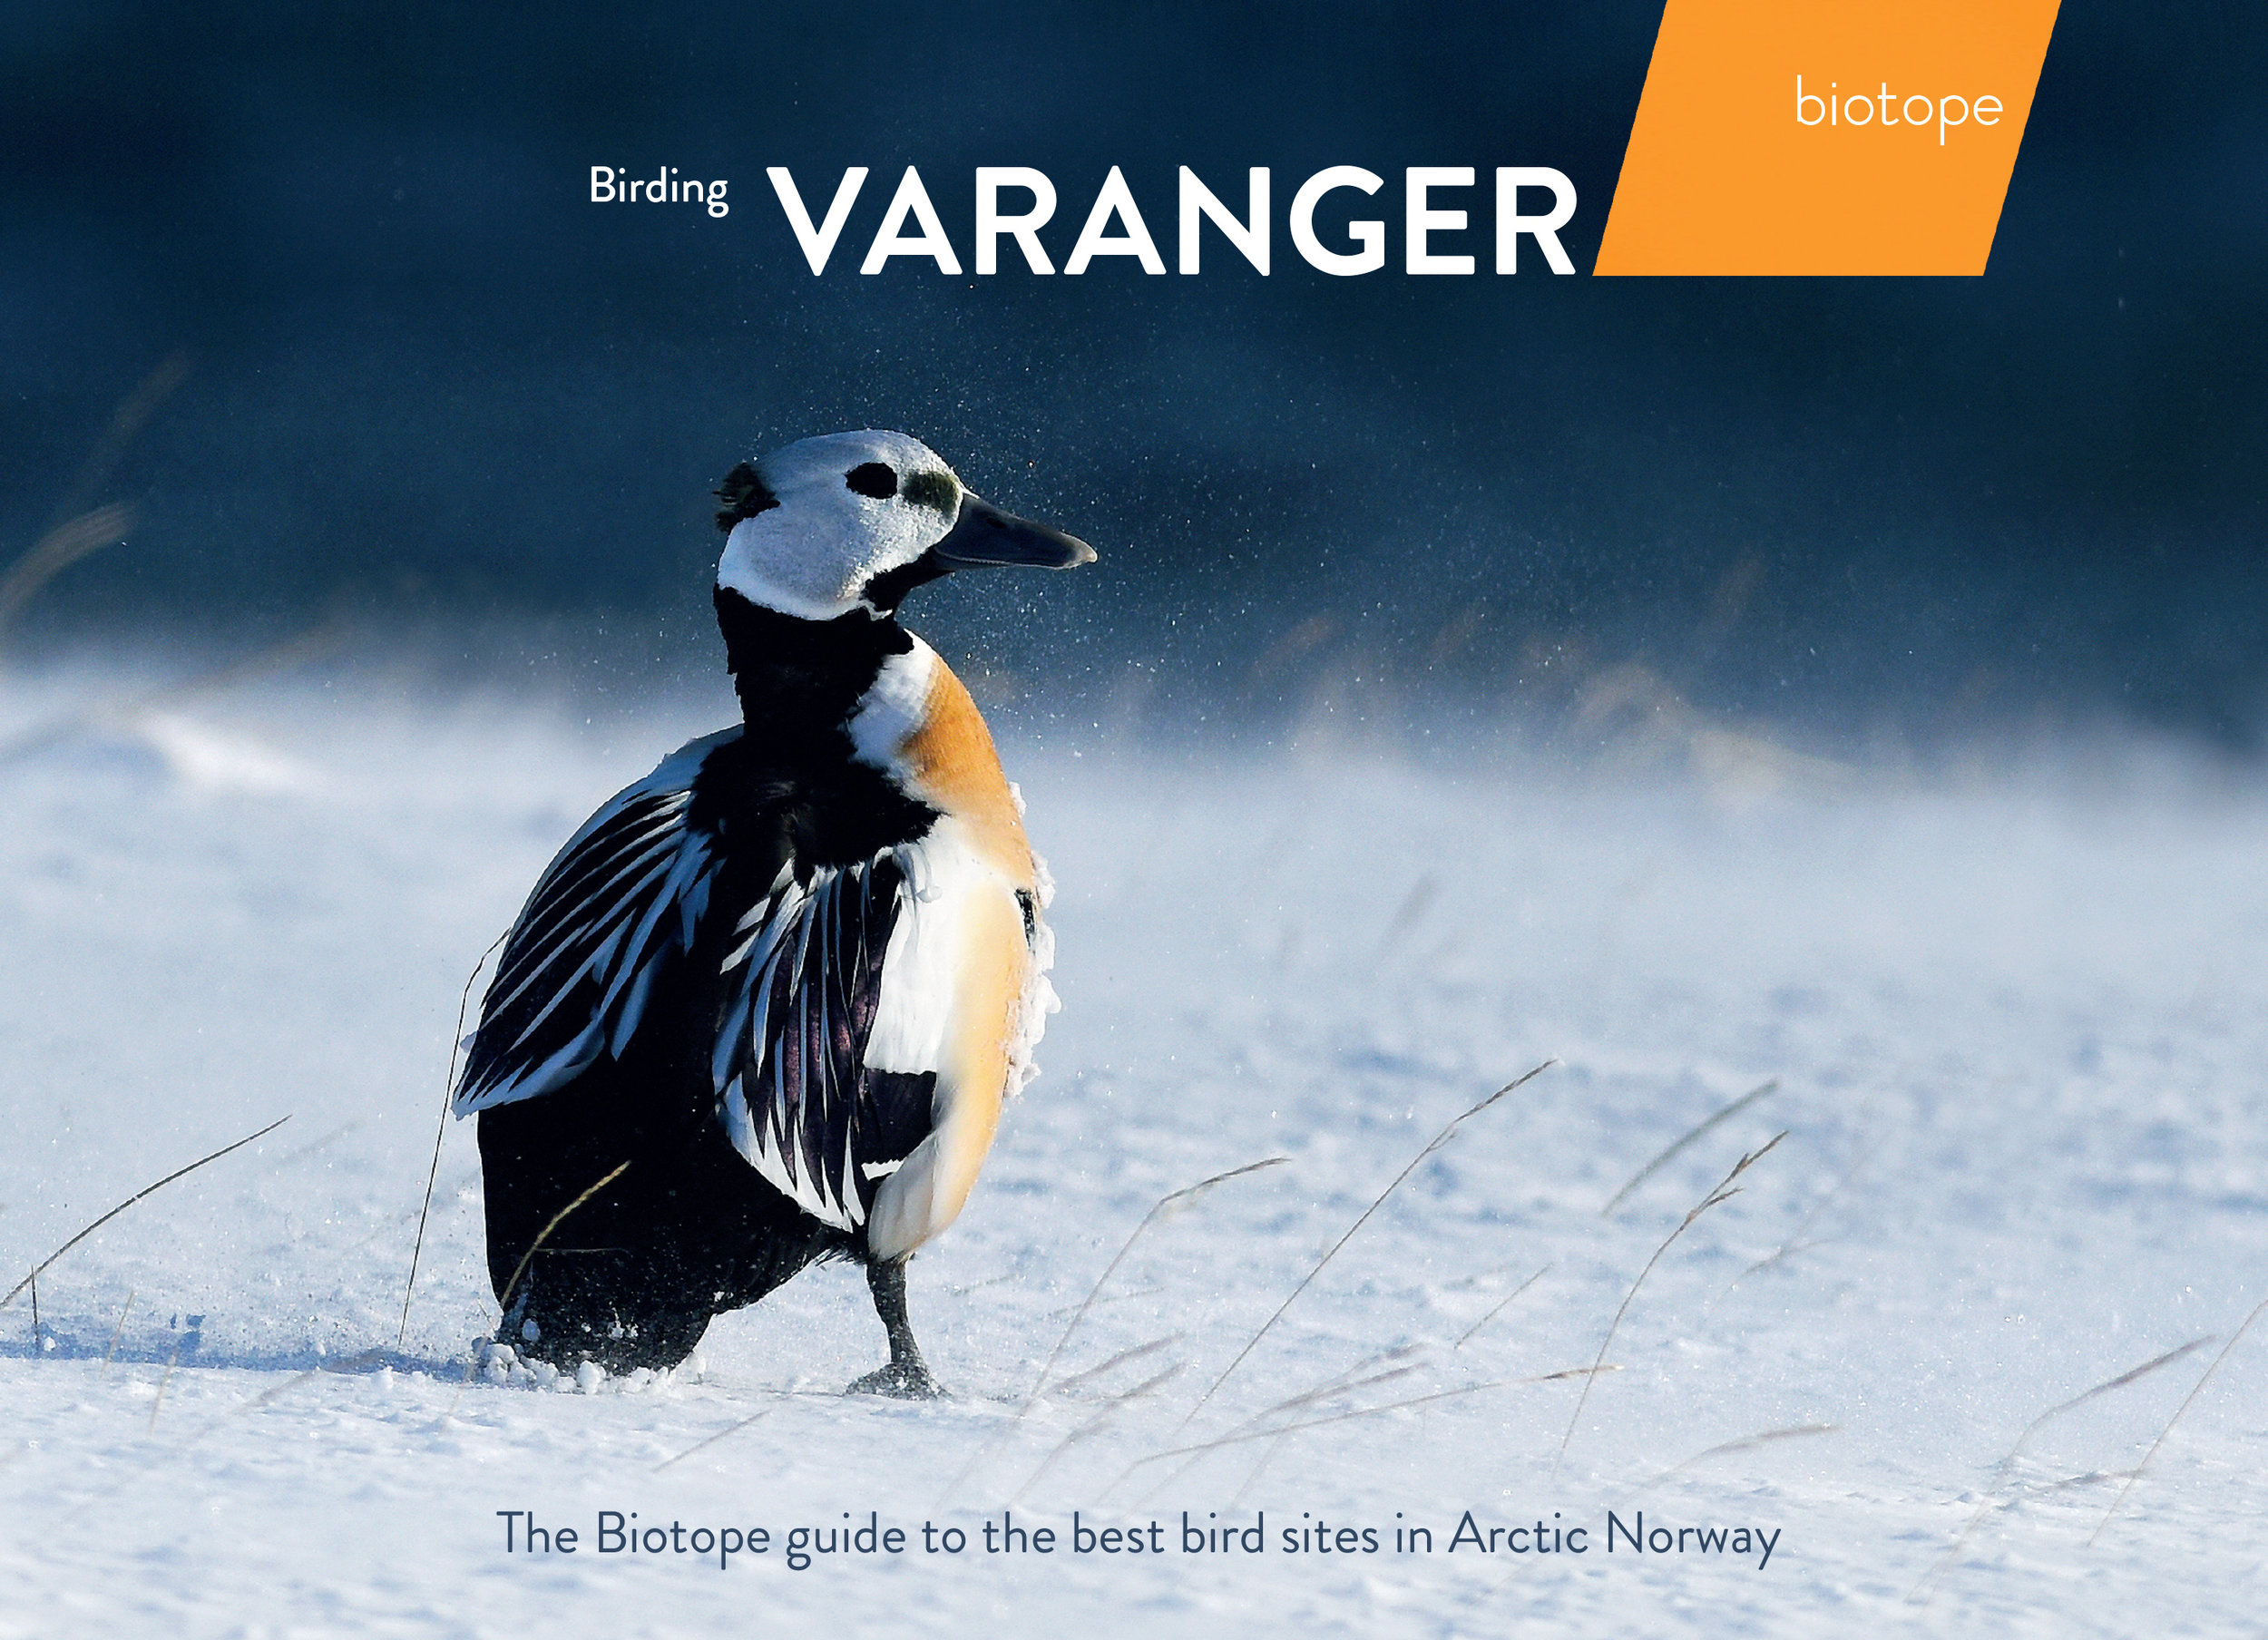 the cover of the best selling destination guide book  `Birding Varanger ´, by Biotope (4000+ copies sold pr May 2019)